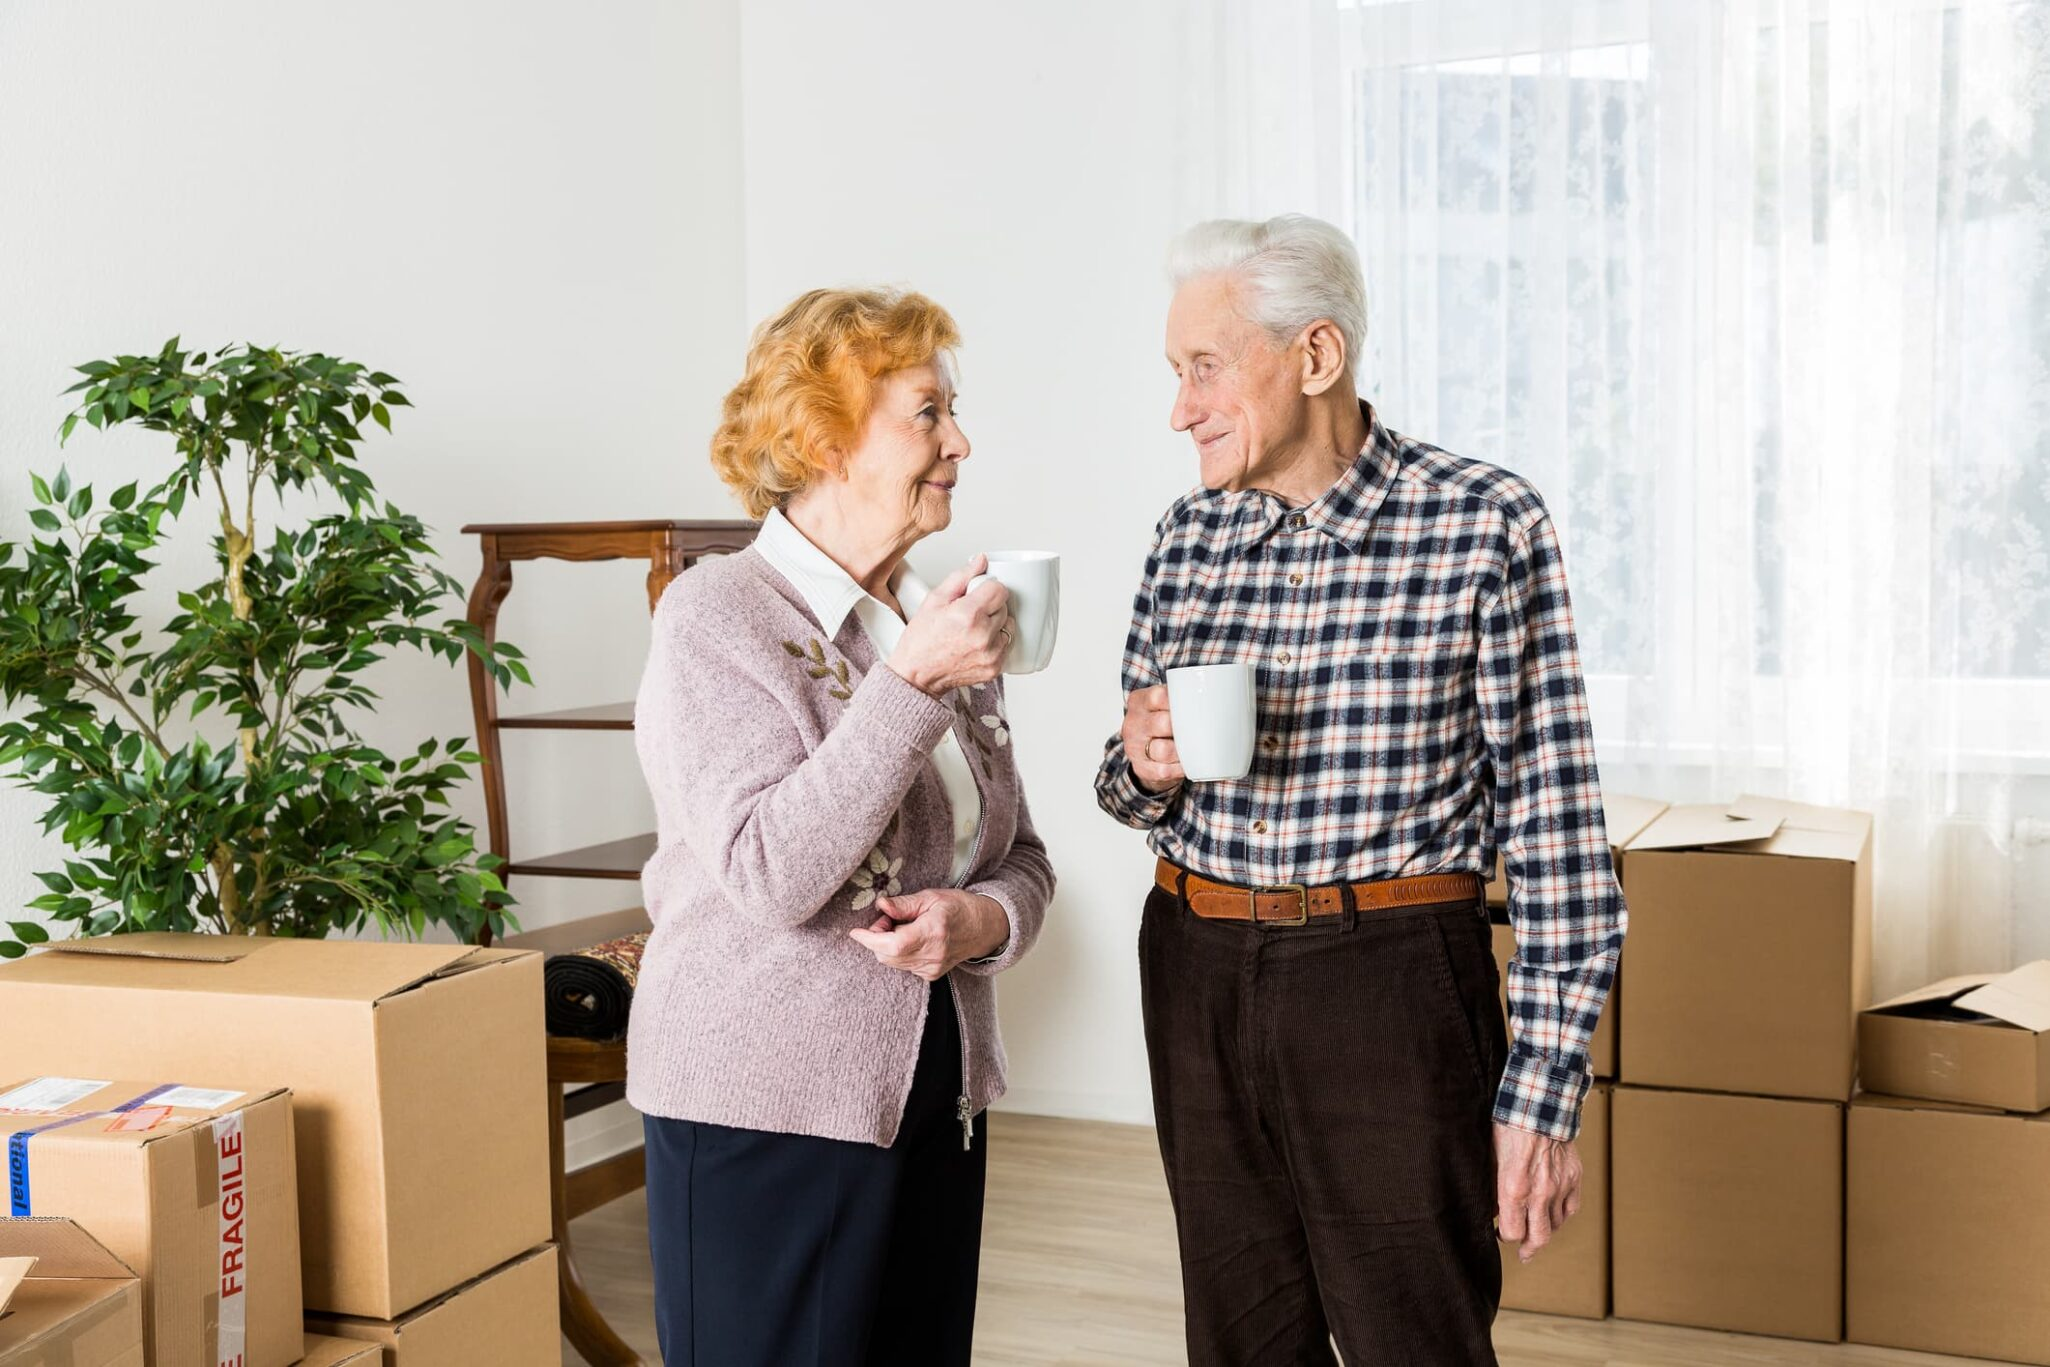 Senior couple enjoying coffee in a room with moving boxes.